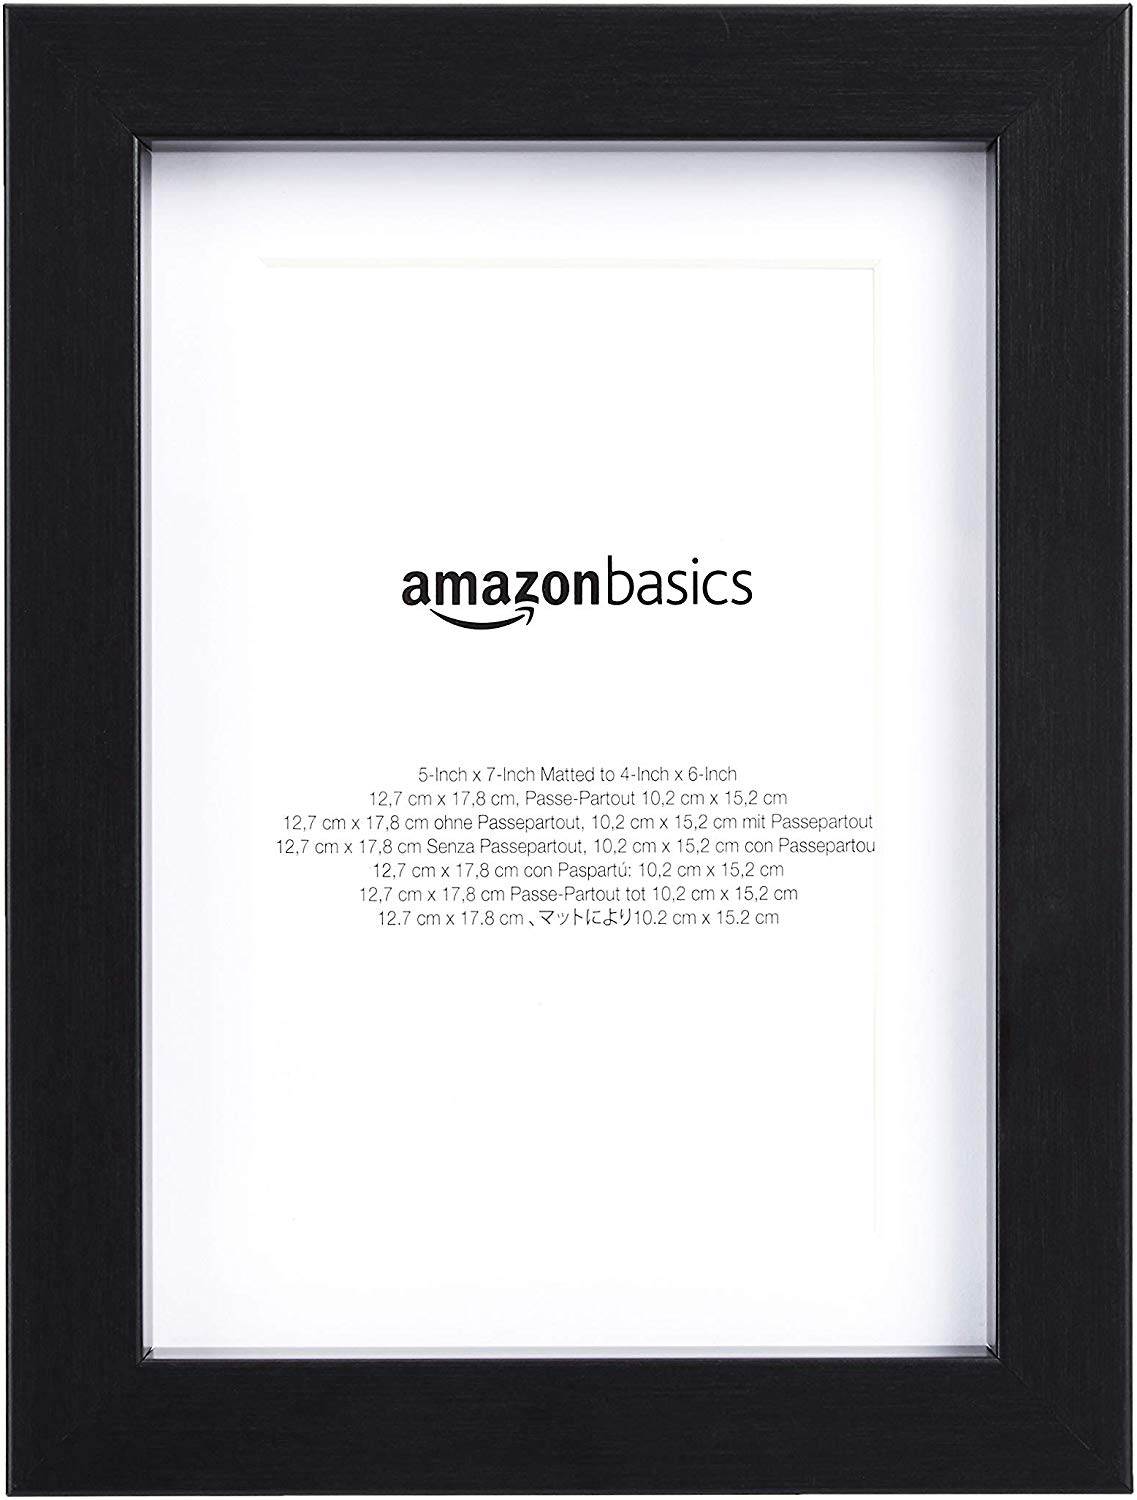 AmazonBasics Photo Frame with Mat - 13 x 18 cm matted to 10 x 15 cm, Black, 2-Pack